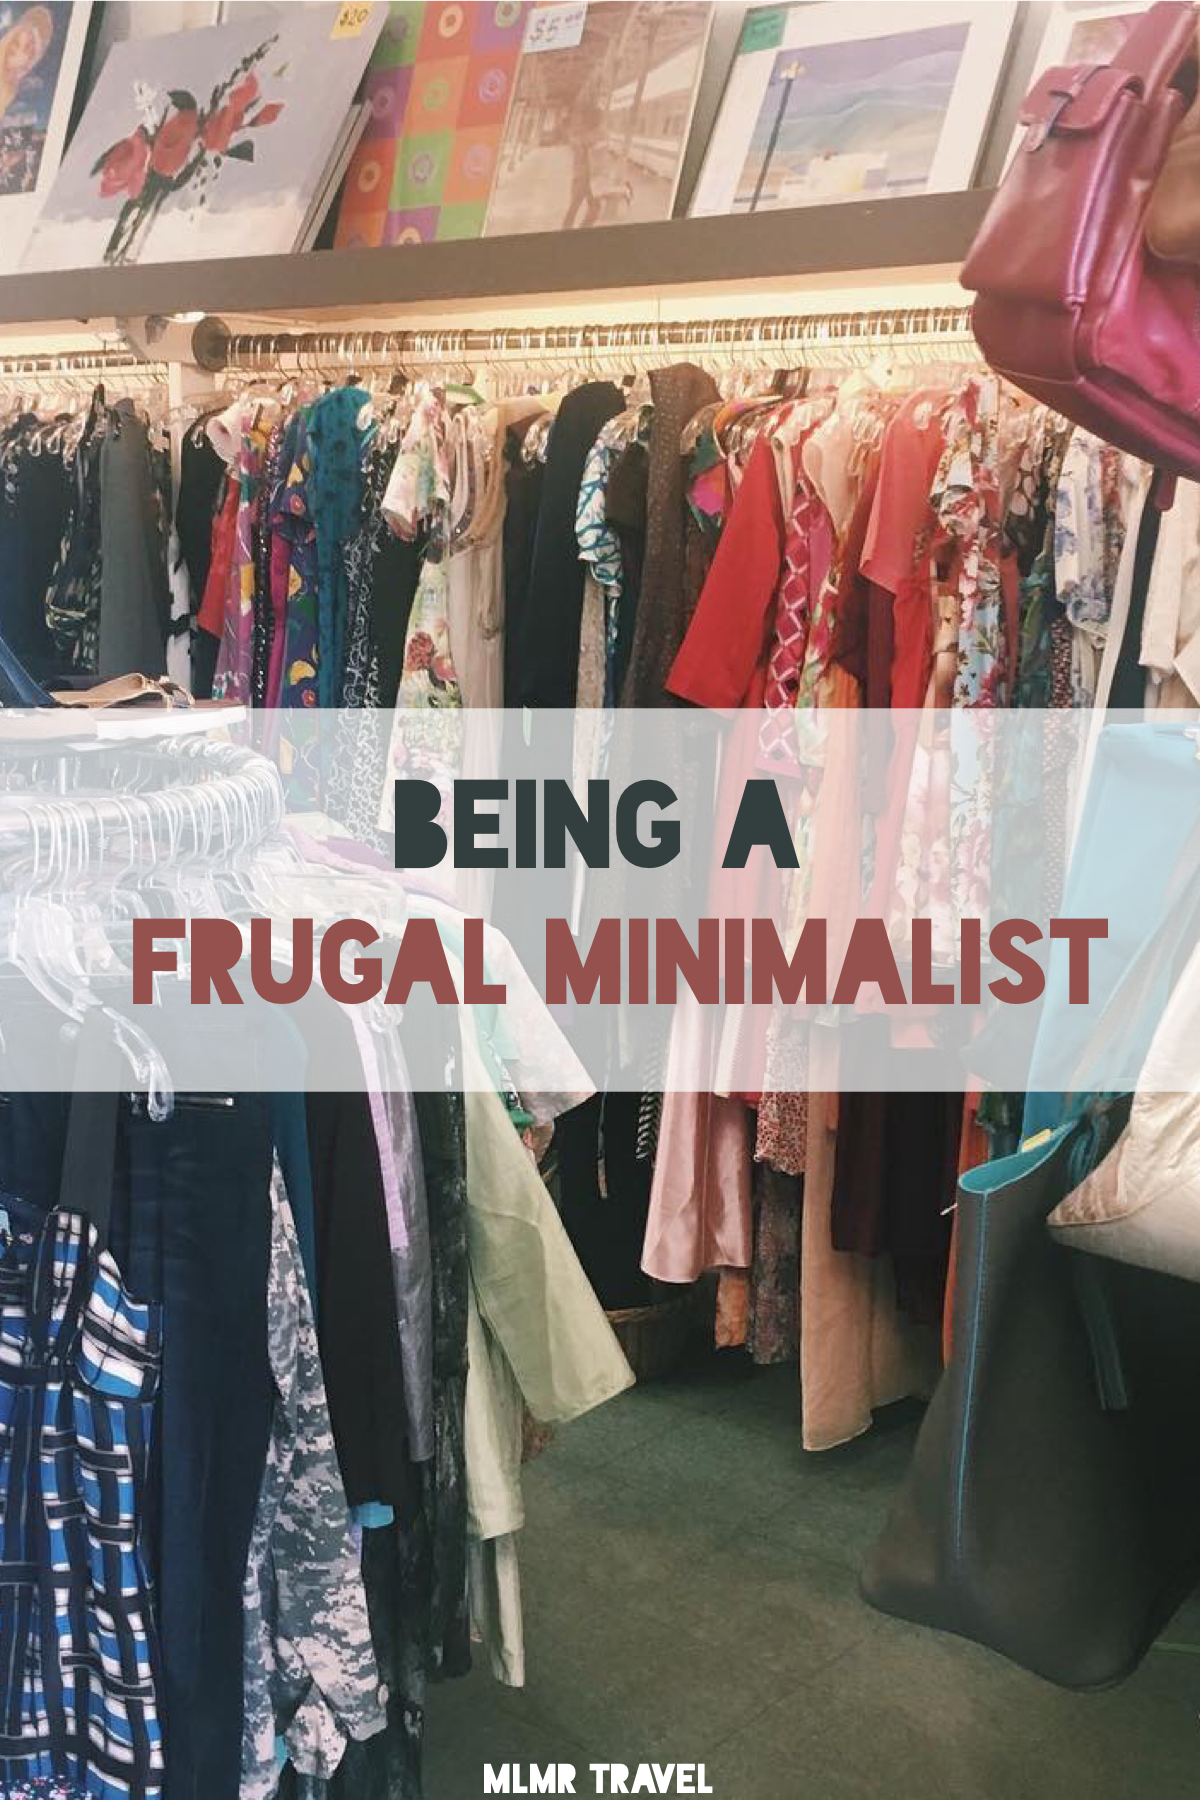 Being Both Frugal And A Minimalist Can Be Tricky Heres How We Find A Middle Ground Minimal Fugal Minimalist